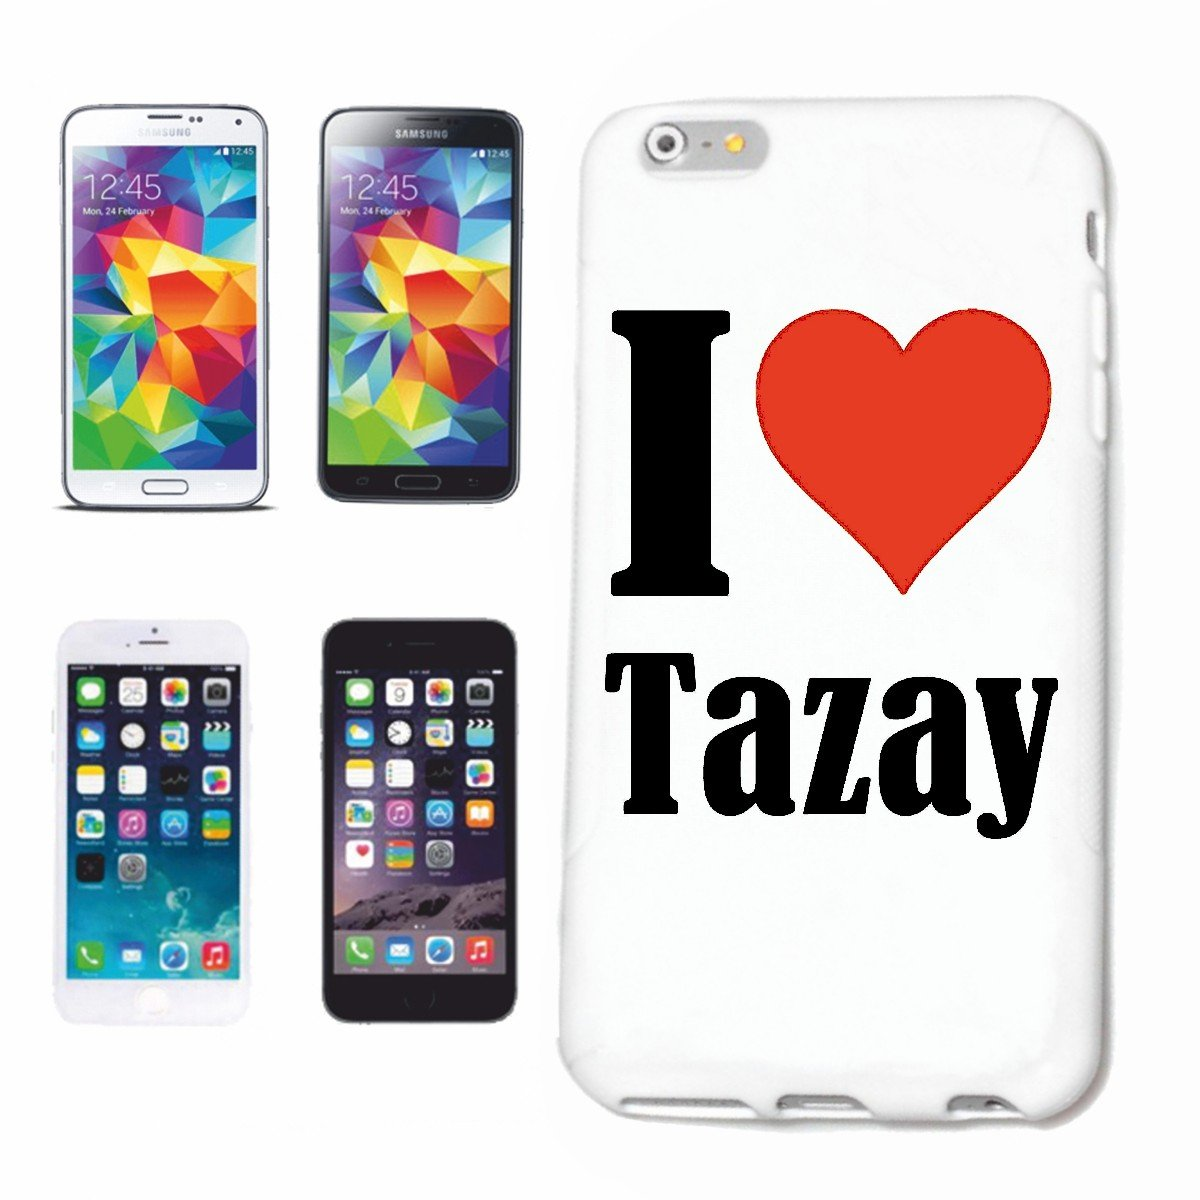 Helene Mobile phone case compatible for Samsung Galaxy S3 i9300 I Love  Tazay - White - Slim and beautiful, that's our Hardcase. Hardcase  Protective Cover Mo - Buy Online in Cambodia. | [